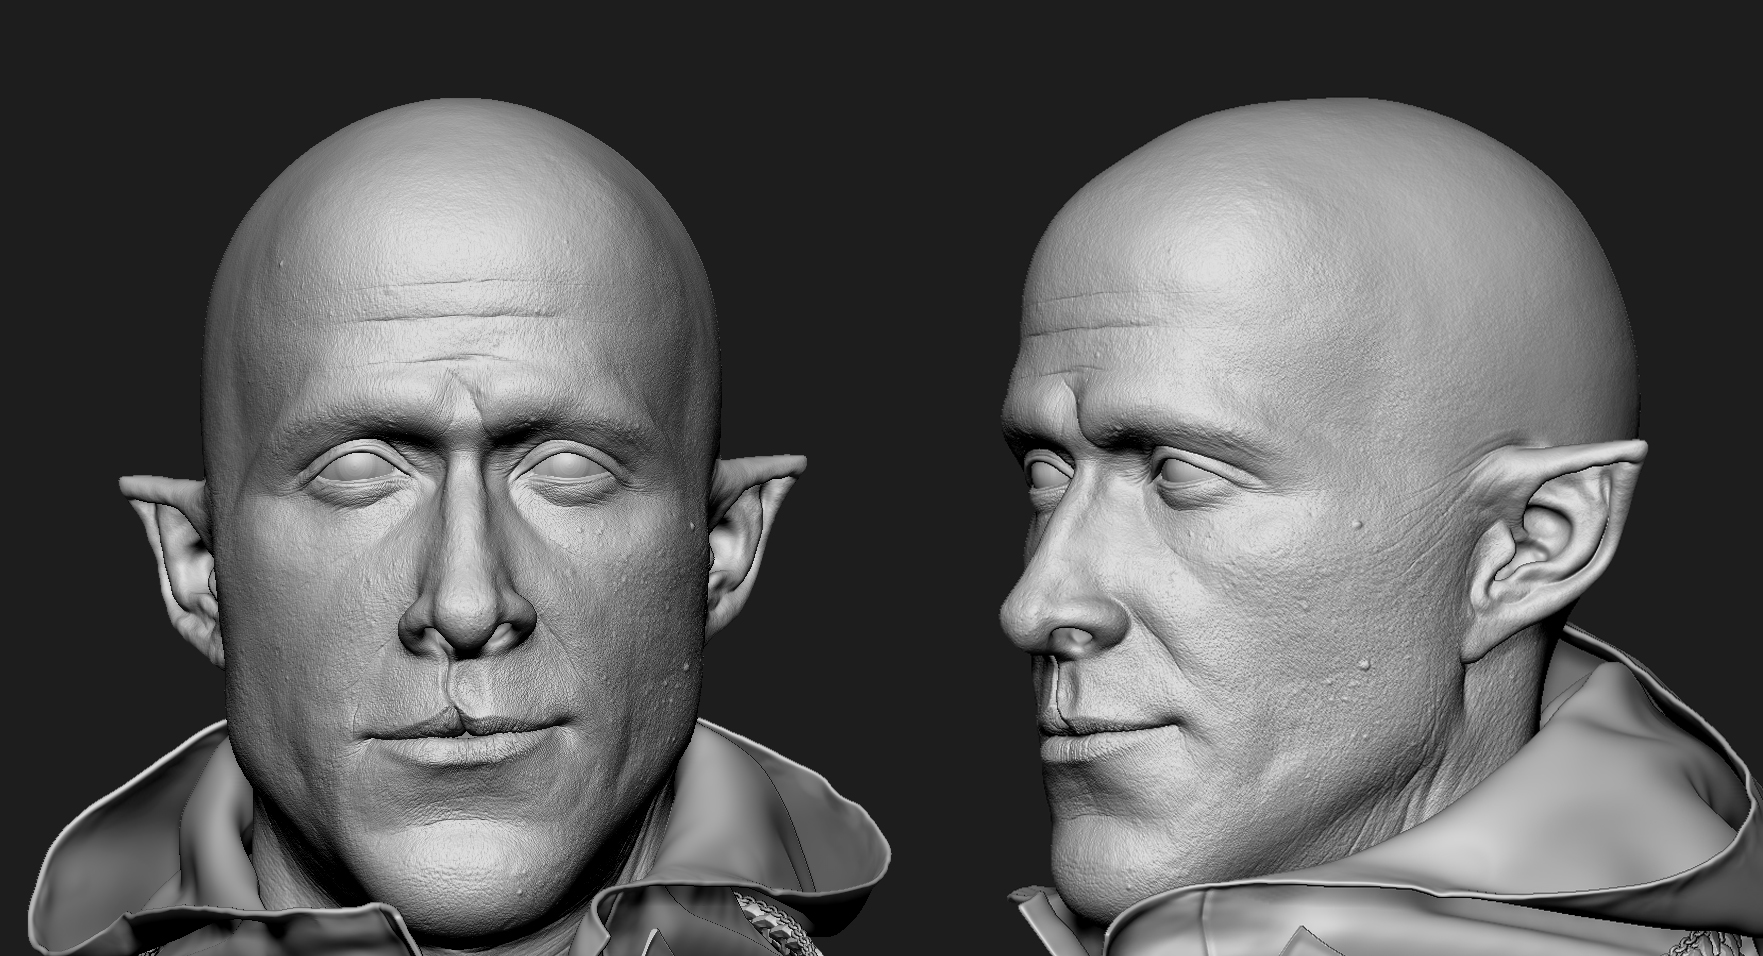 zbrush_screenshot.jpg